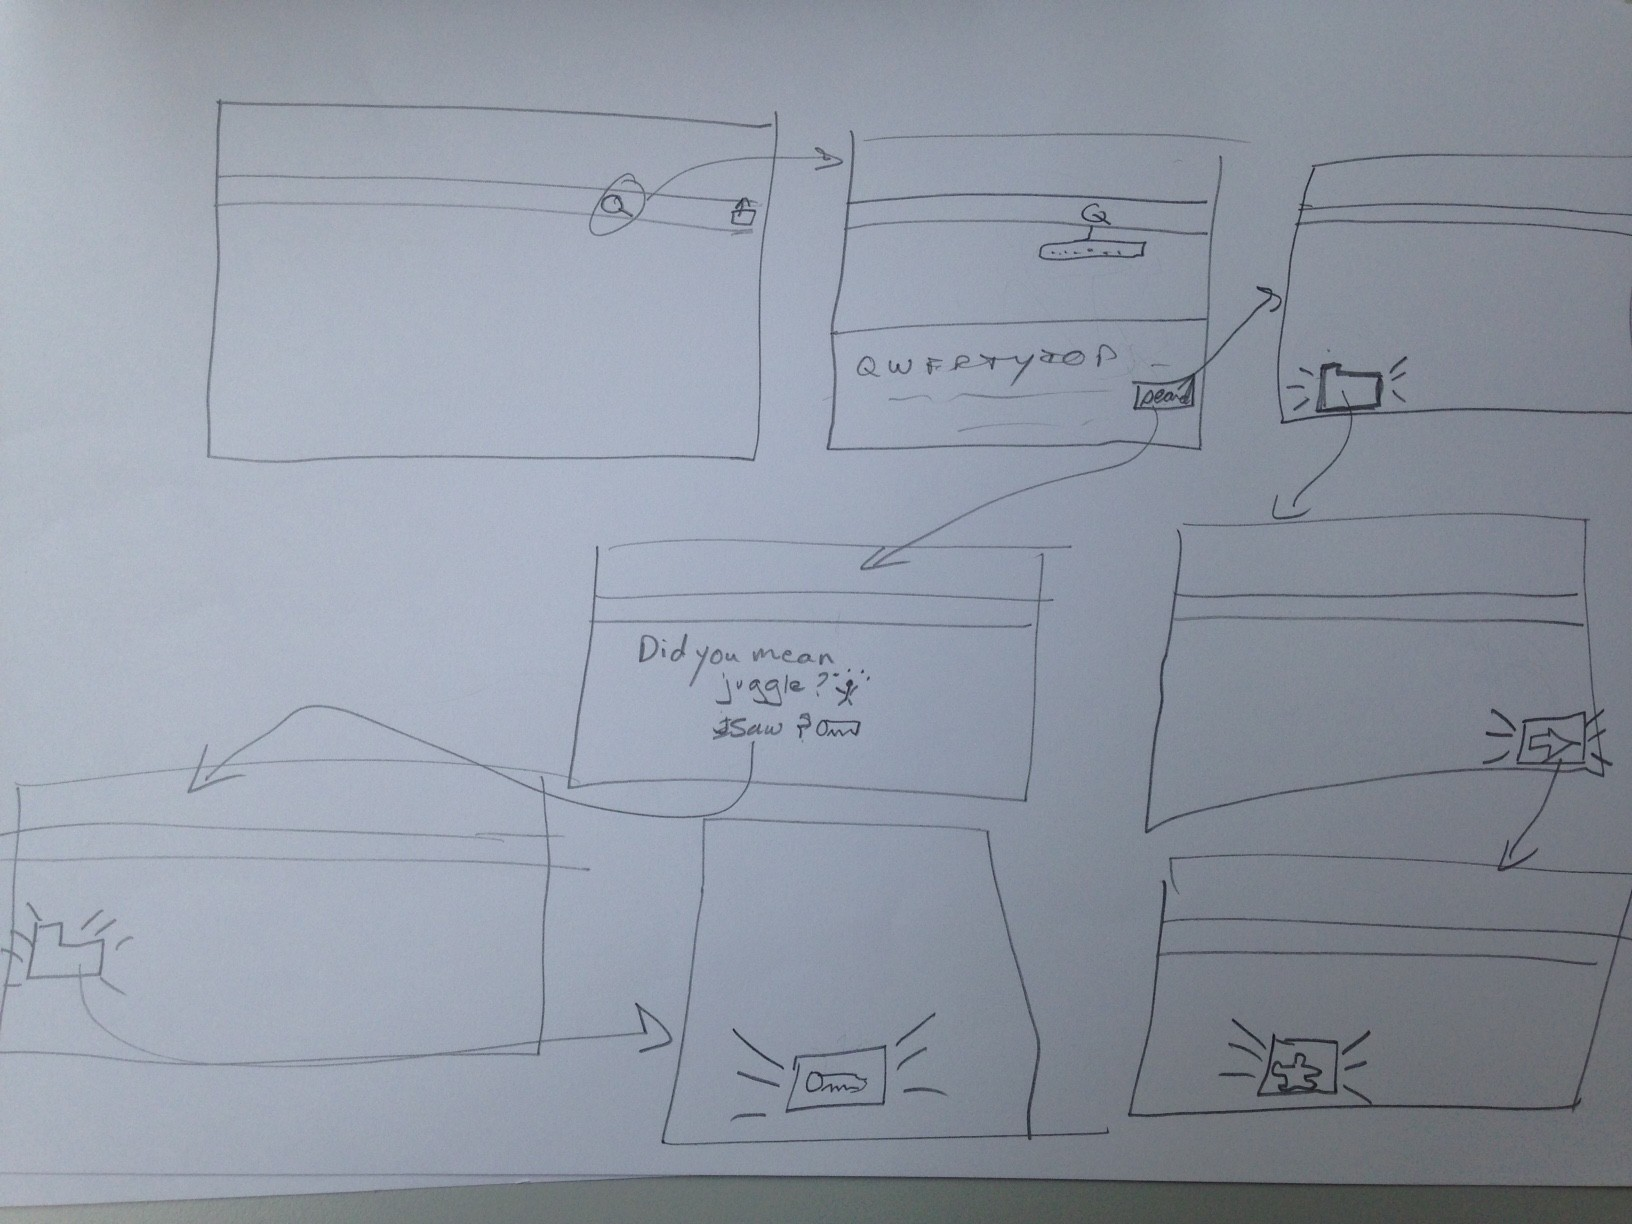 A low fidelity sketch from the workshop showing how someone might find the word jigsaw in the app.